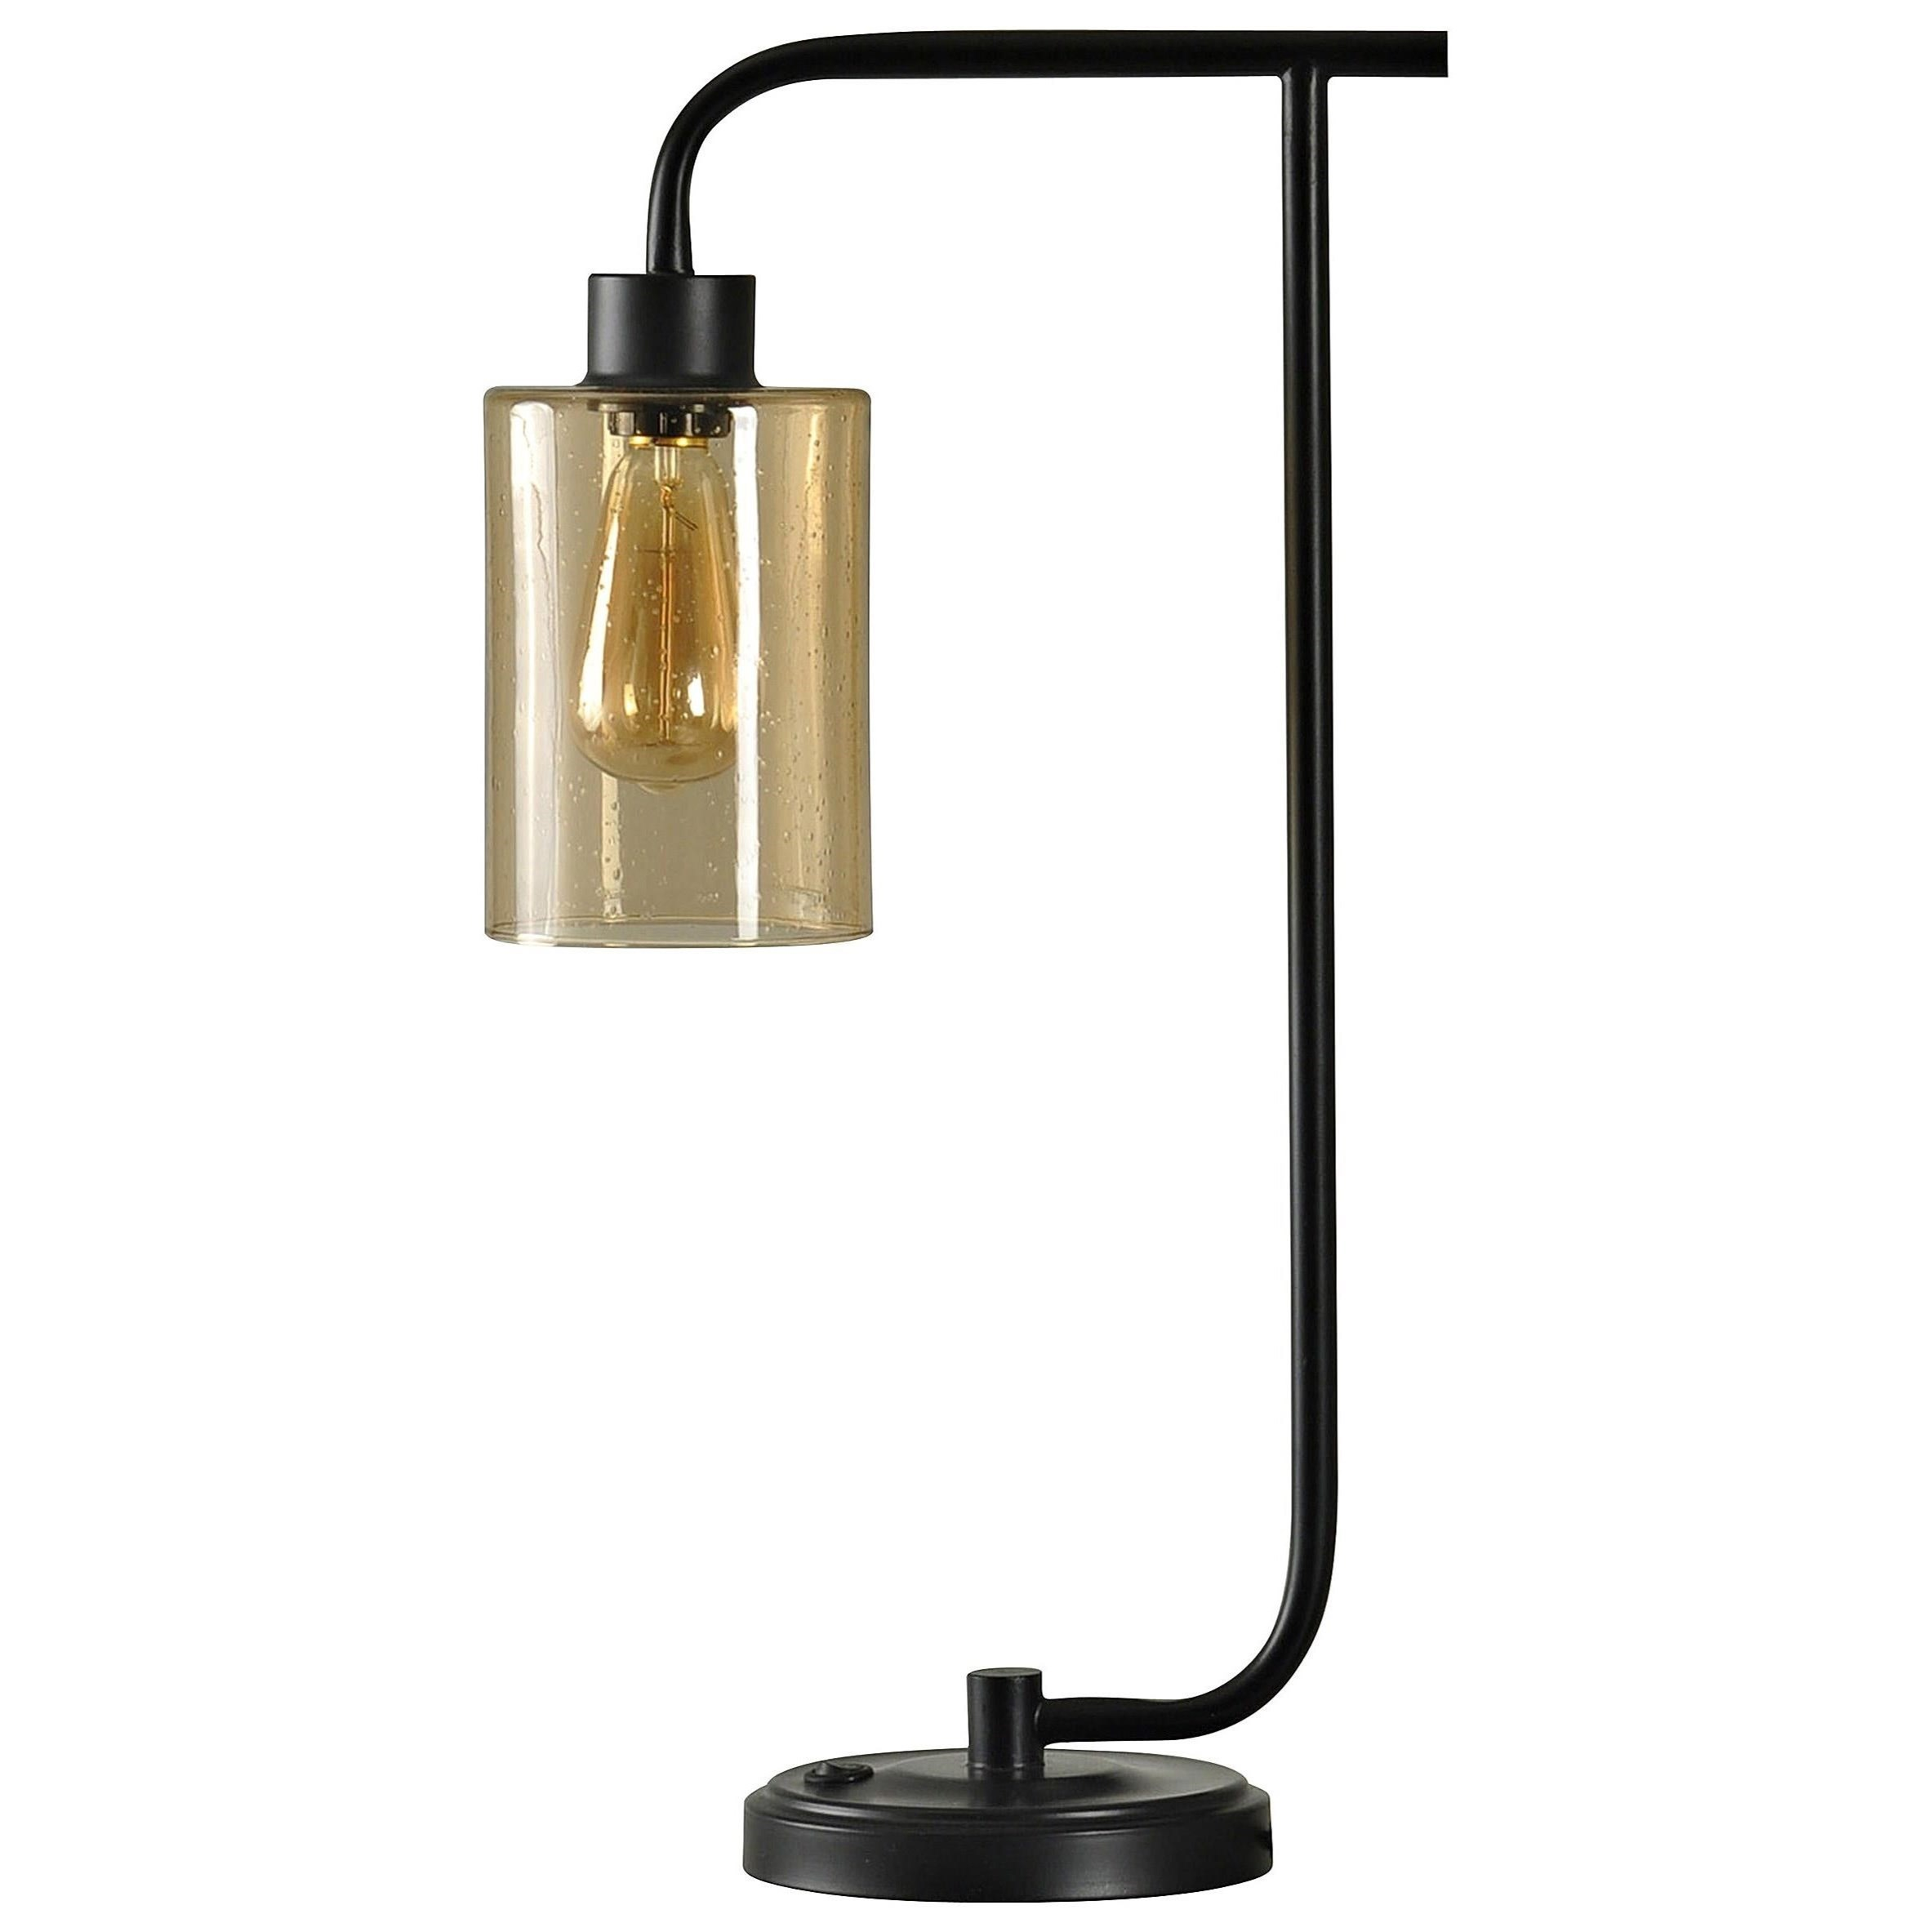 Lamps Glass and Metal Desk Lamp by StyleCraft at Wilcox Furniture